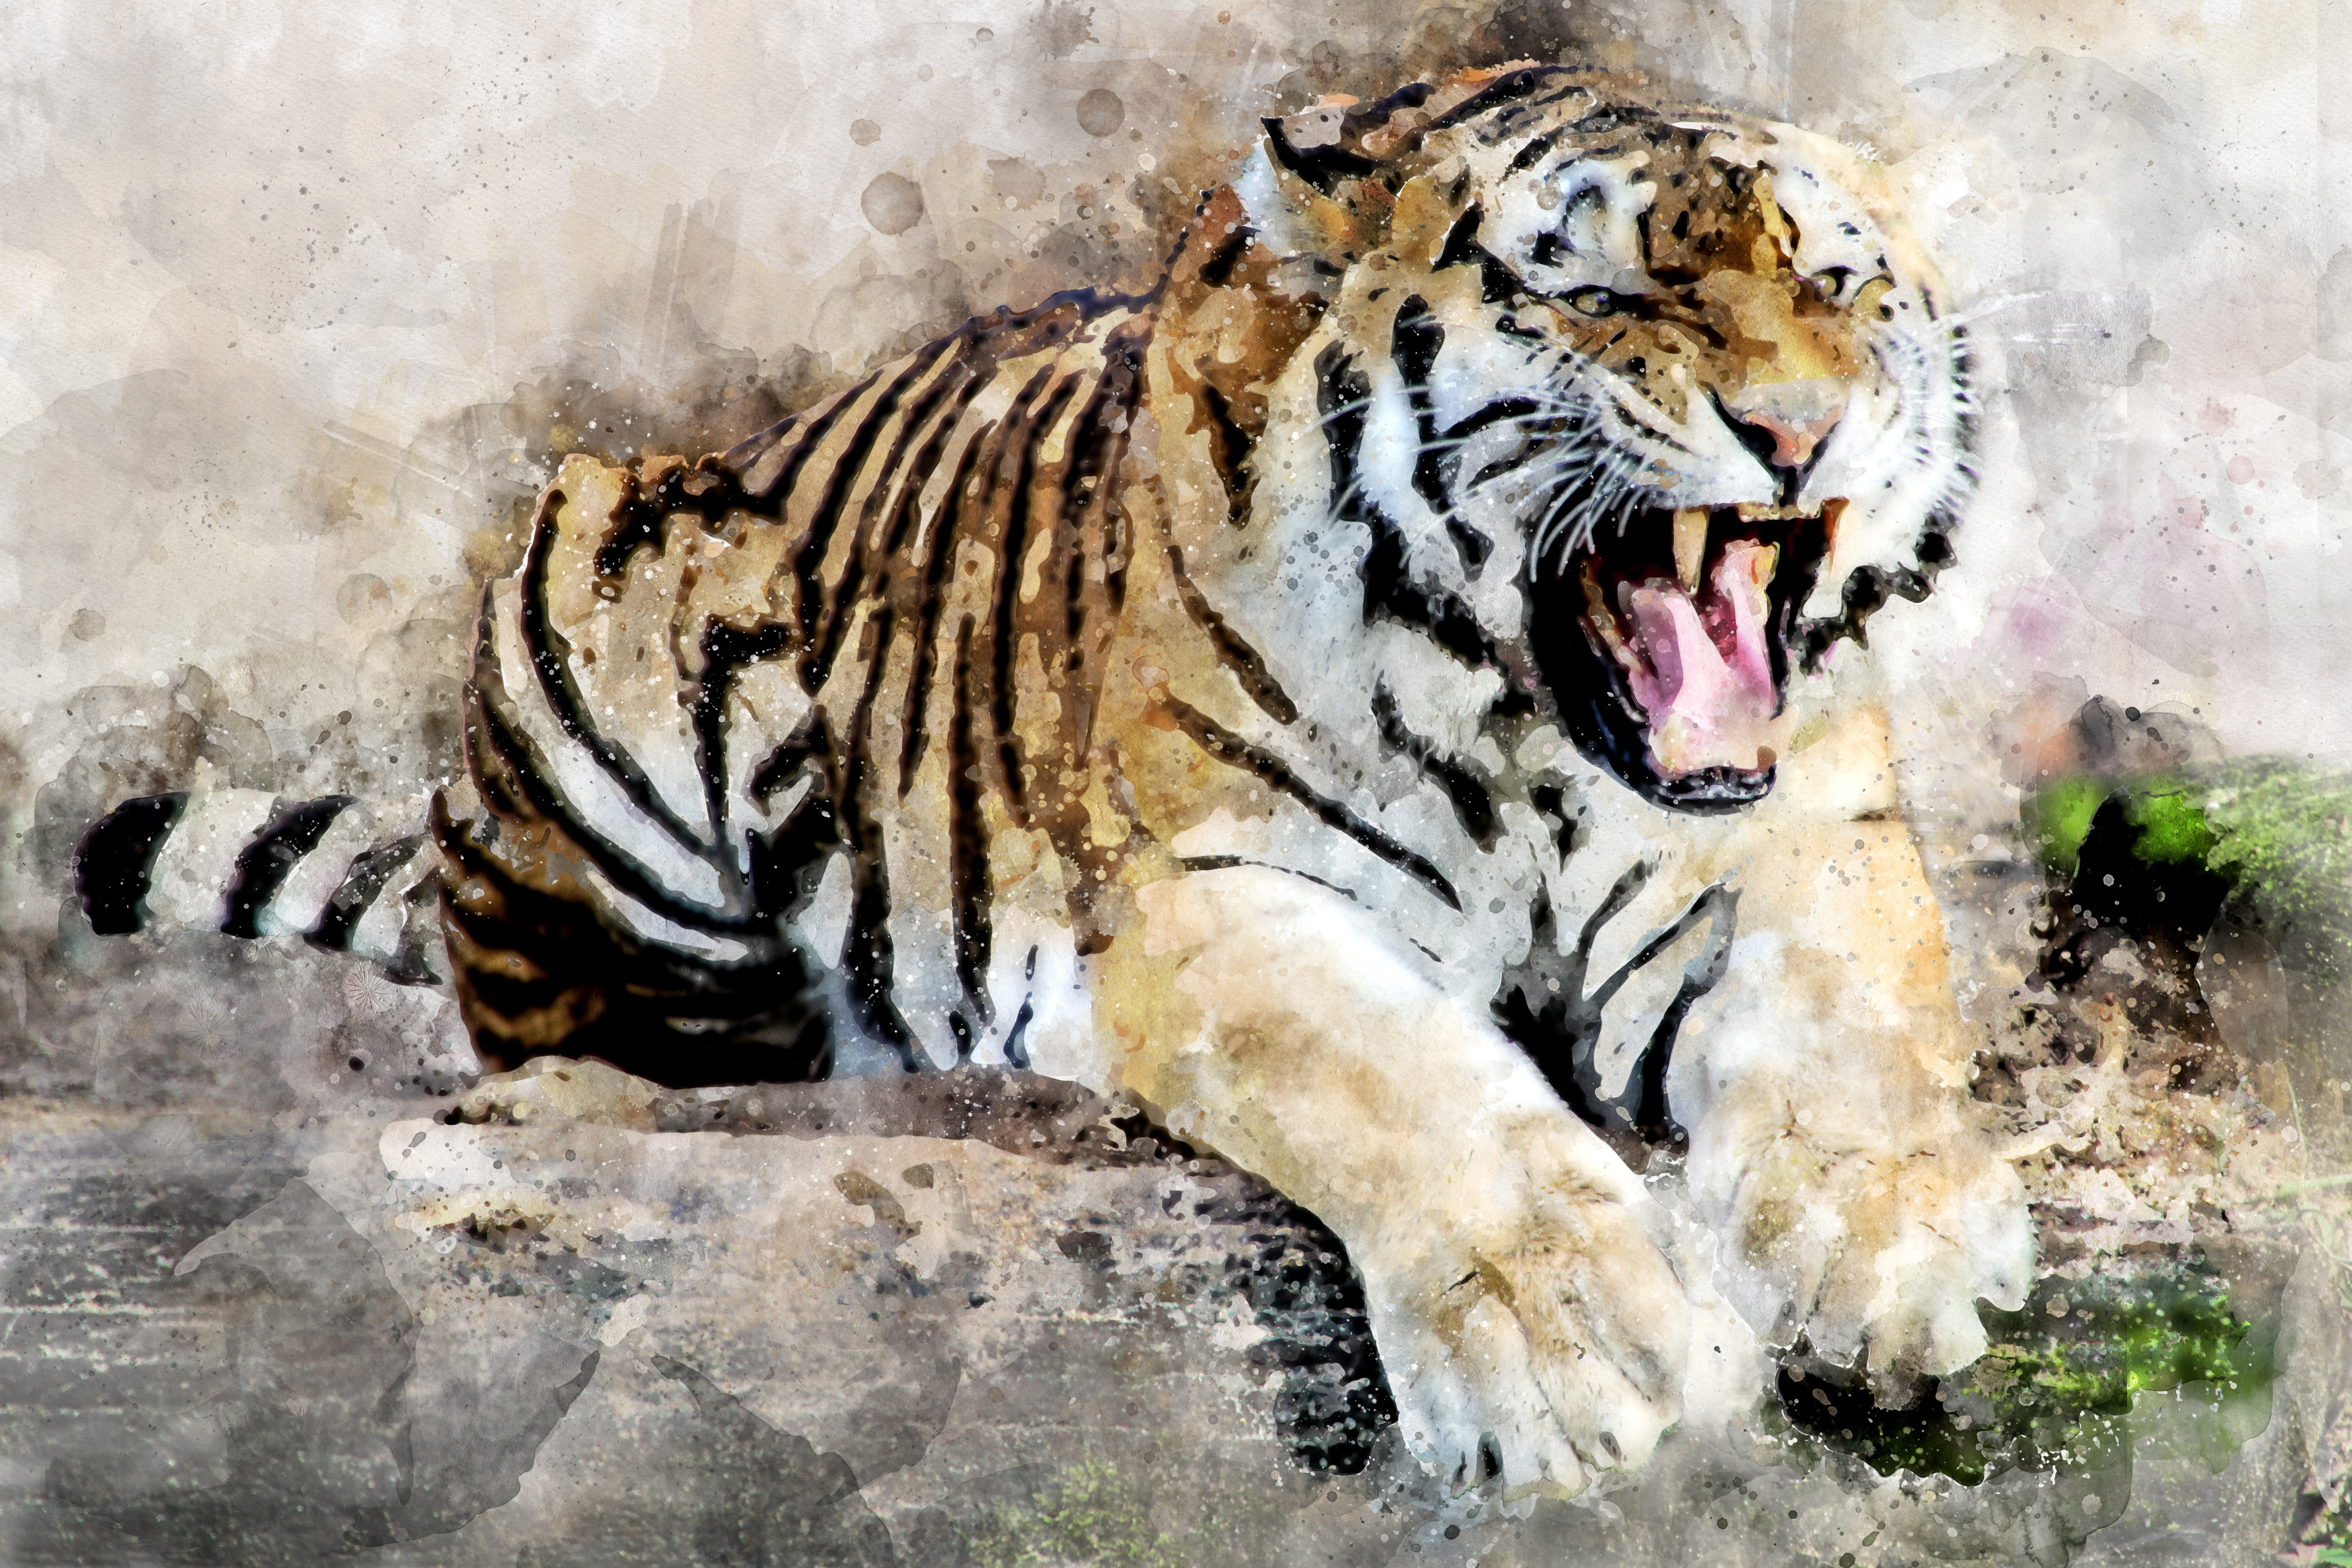 tiger abstract art 4k hd artist 4k wallpapers images backgrounds photos and pictures. Black Bedroom Furniture Sets. Home Design Ideas